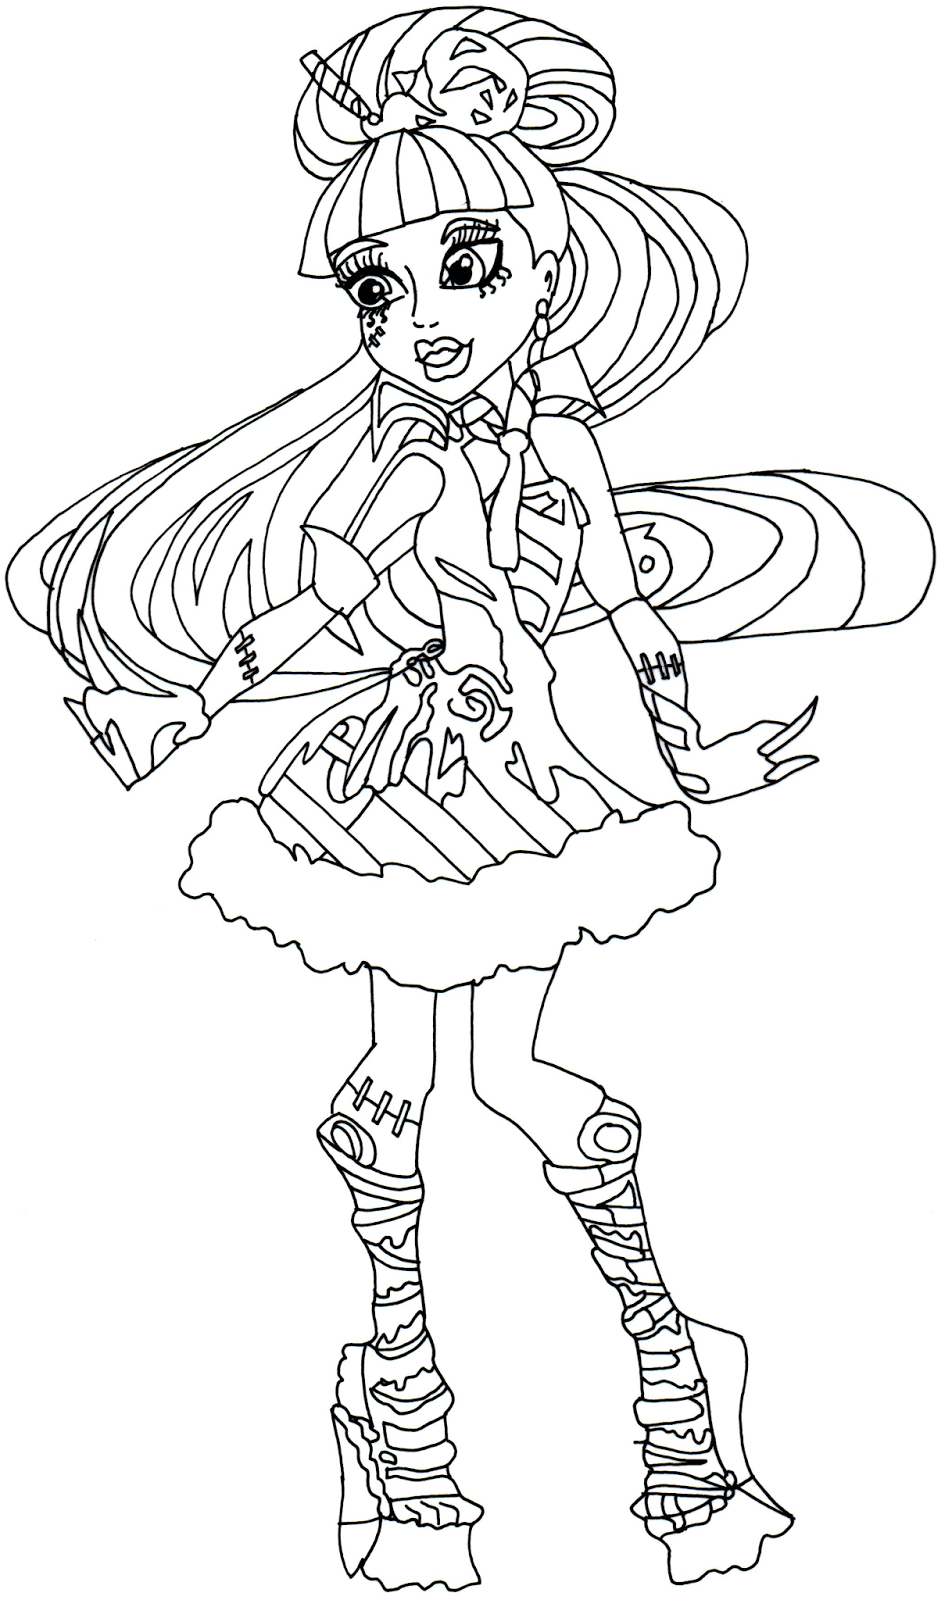 All Monster High Dolls Coloring Pages - Coloring Home